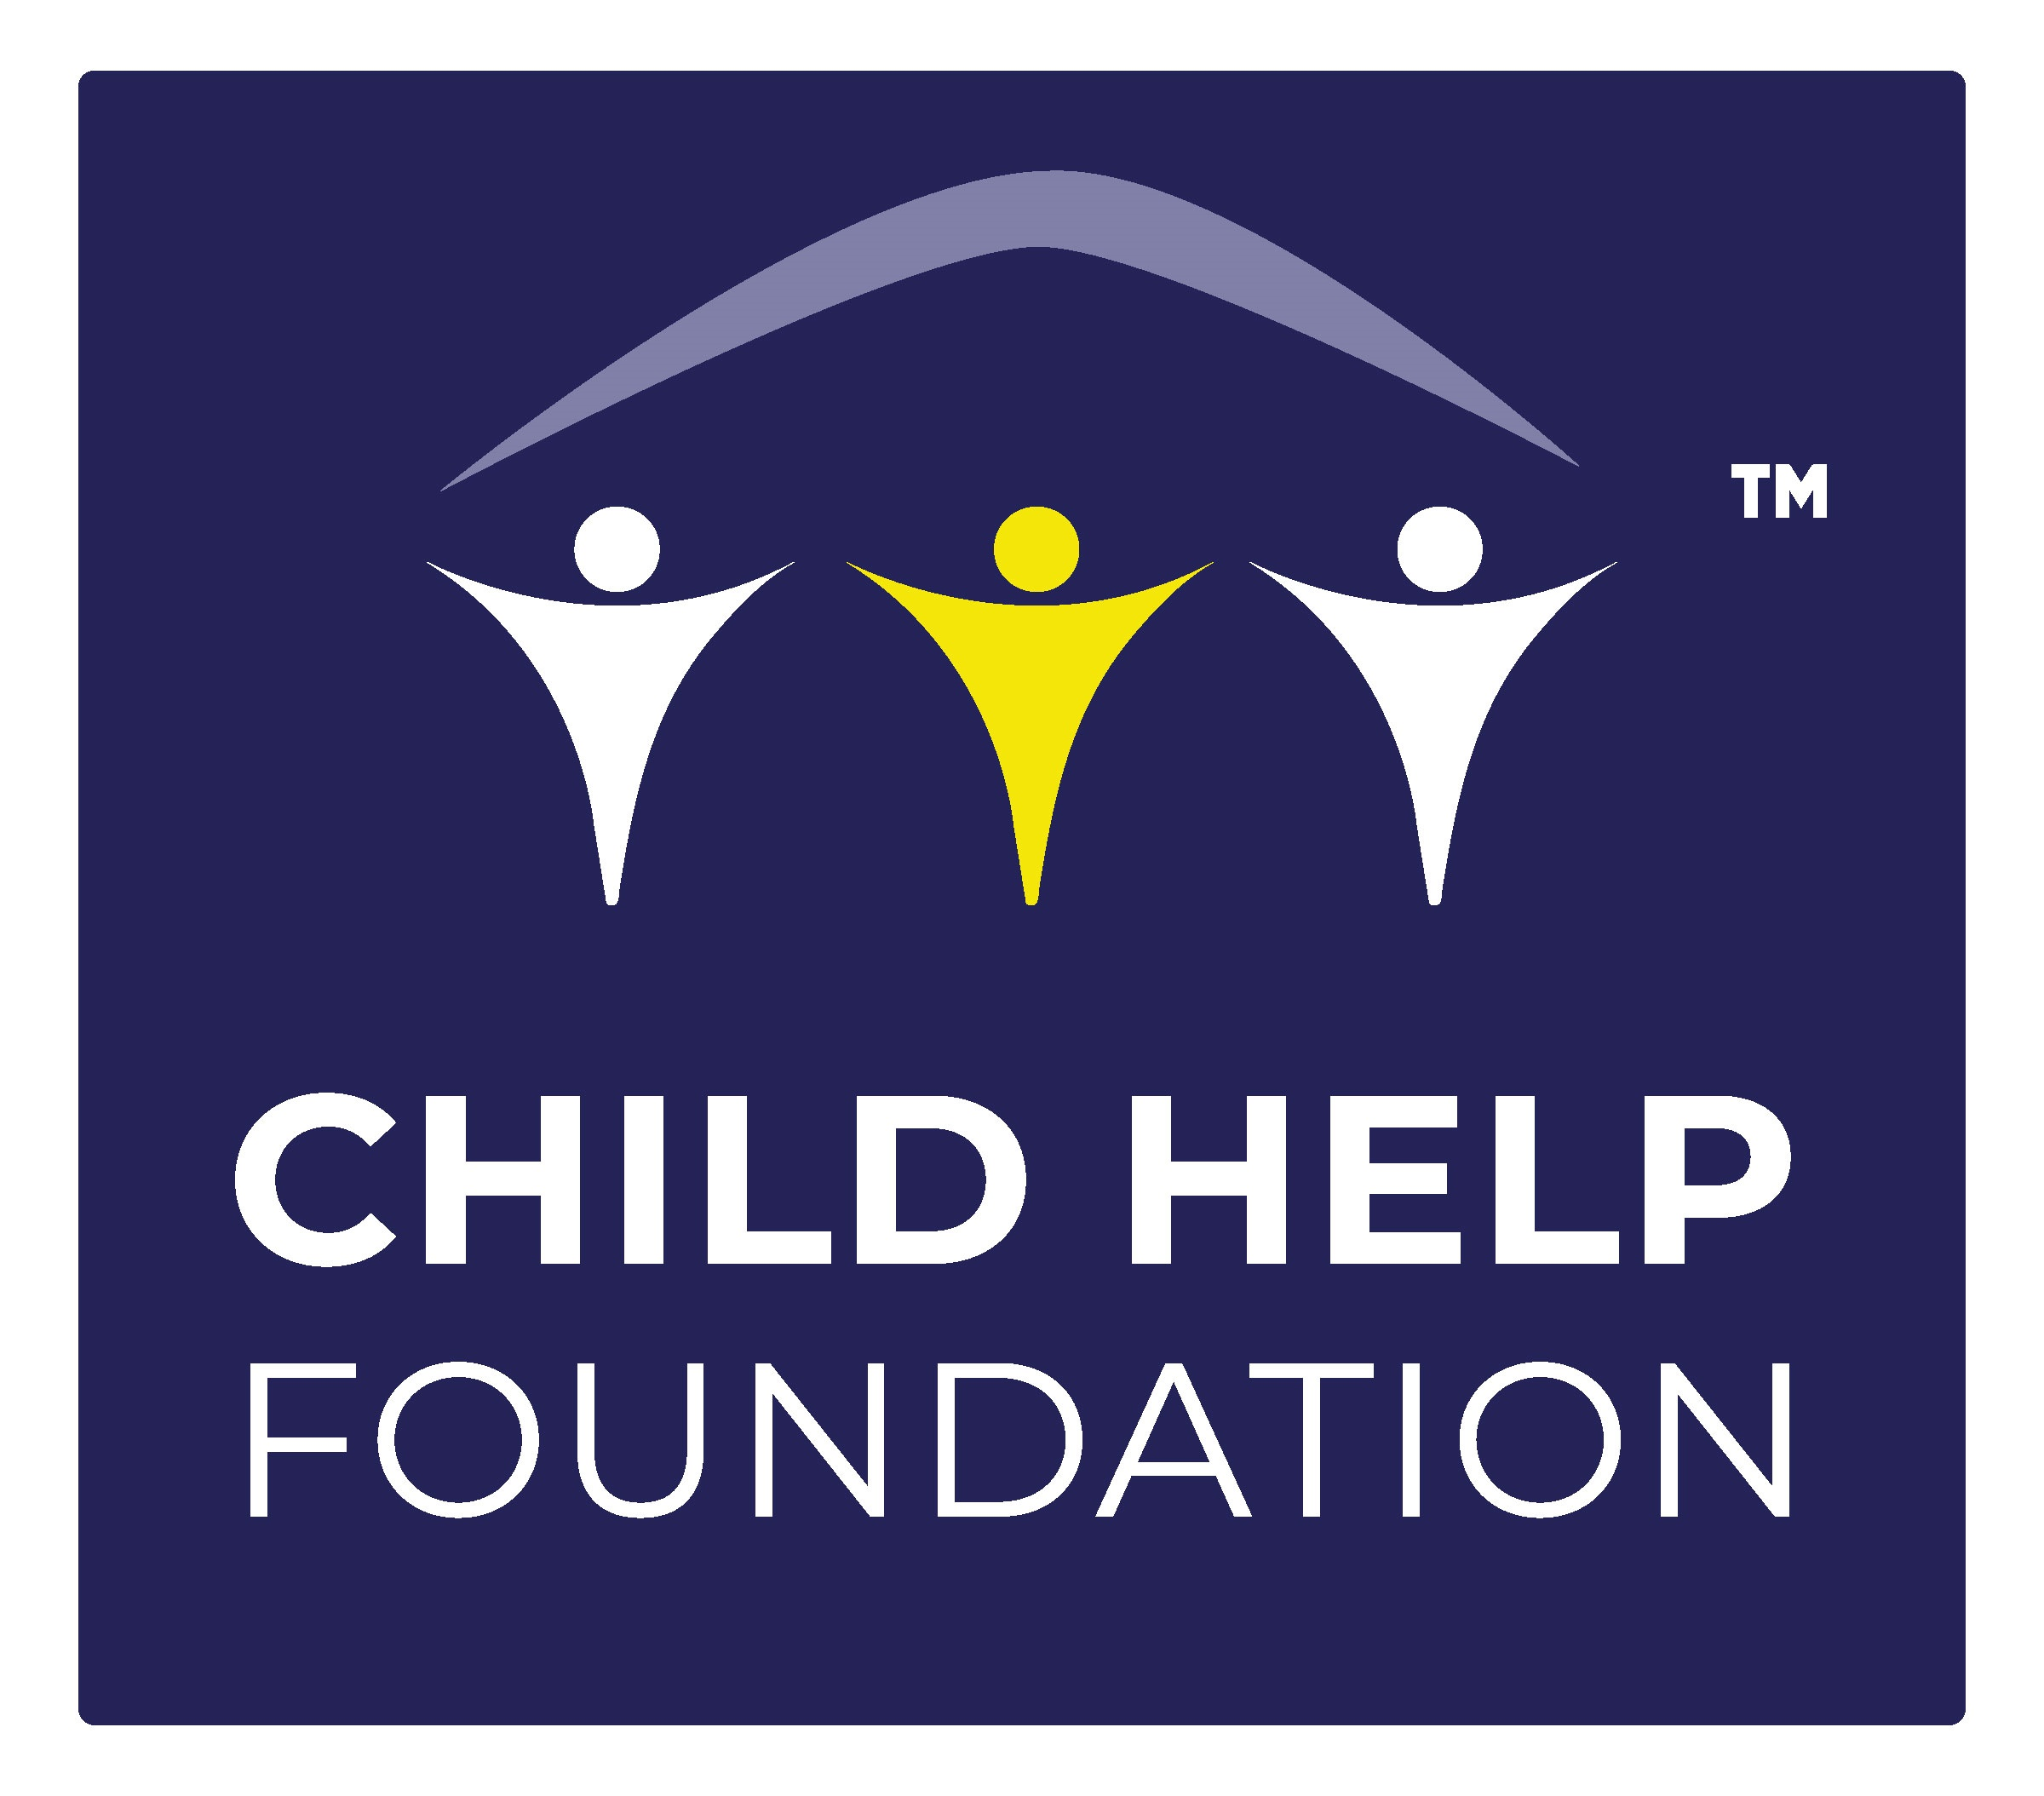 childhelpfoundation